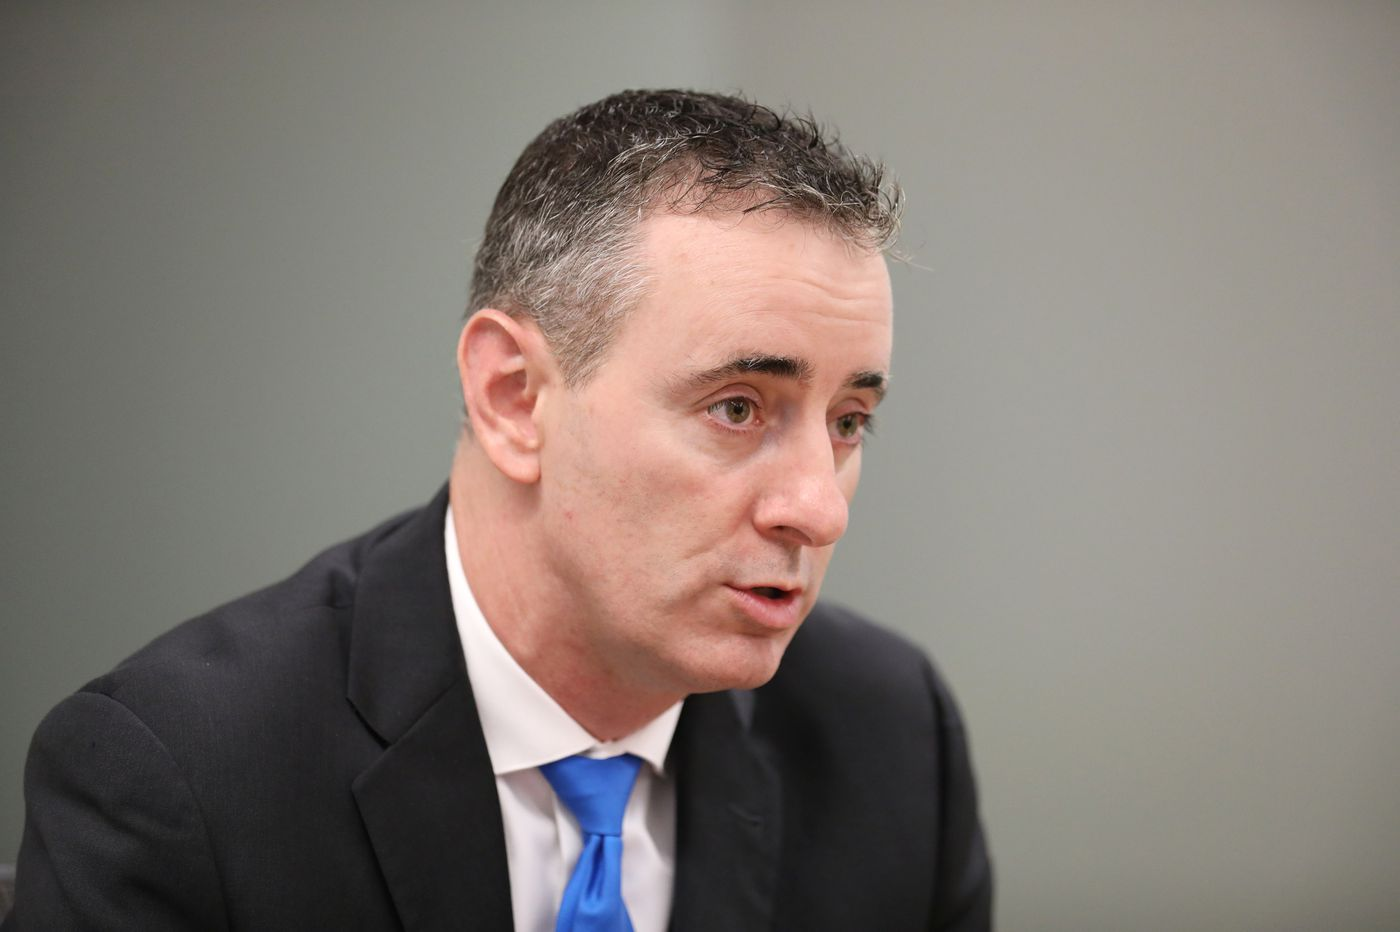 National groups come to the aid of Democrat challenging U.S. Rep. Brian Fitzpatrick in Bucks County